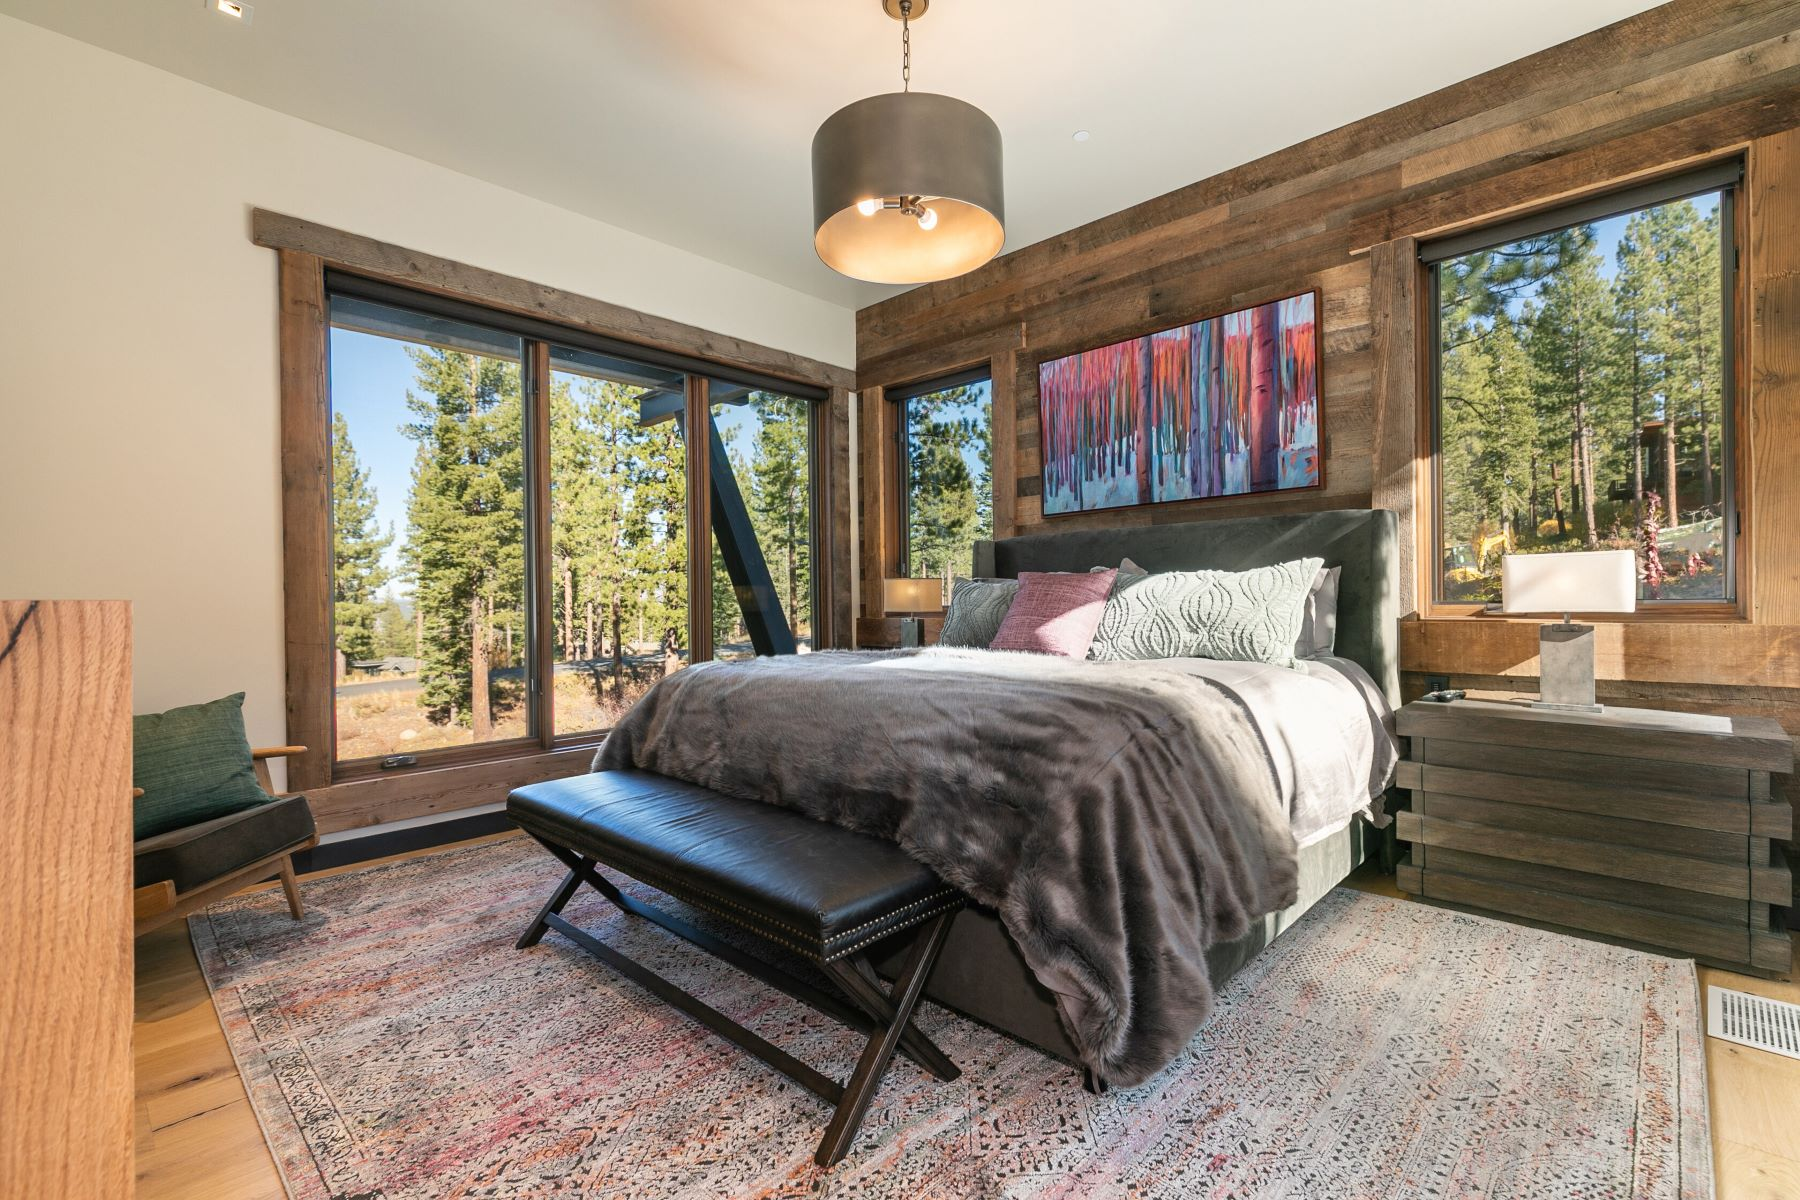 Additional photo for property listing at 9512 Wawona Court, Truckee, CA 96161 9512 Wawona Court 特拉基, 加利福尼亚州 96161 美国